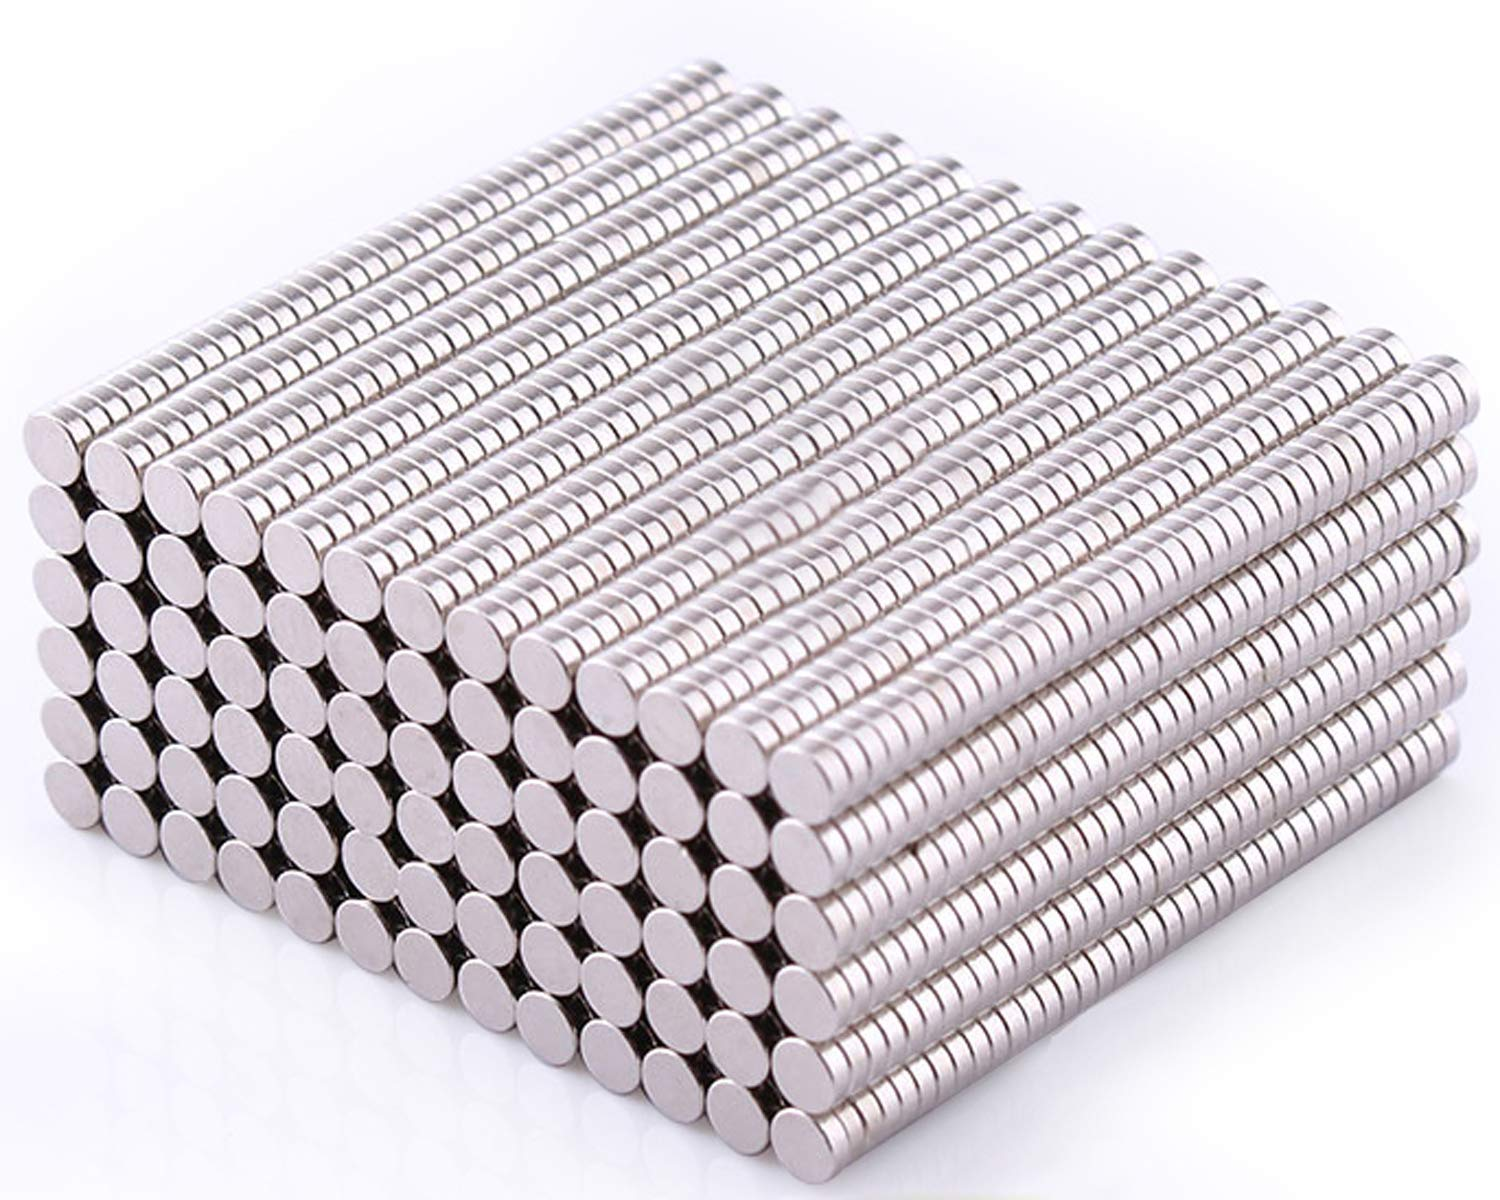 3 mm x 1 mm DIY Office Magnets for Fridge,Whiteboard,Craft,Project,Art - 300PIECES